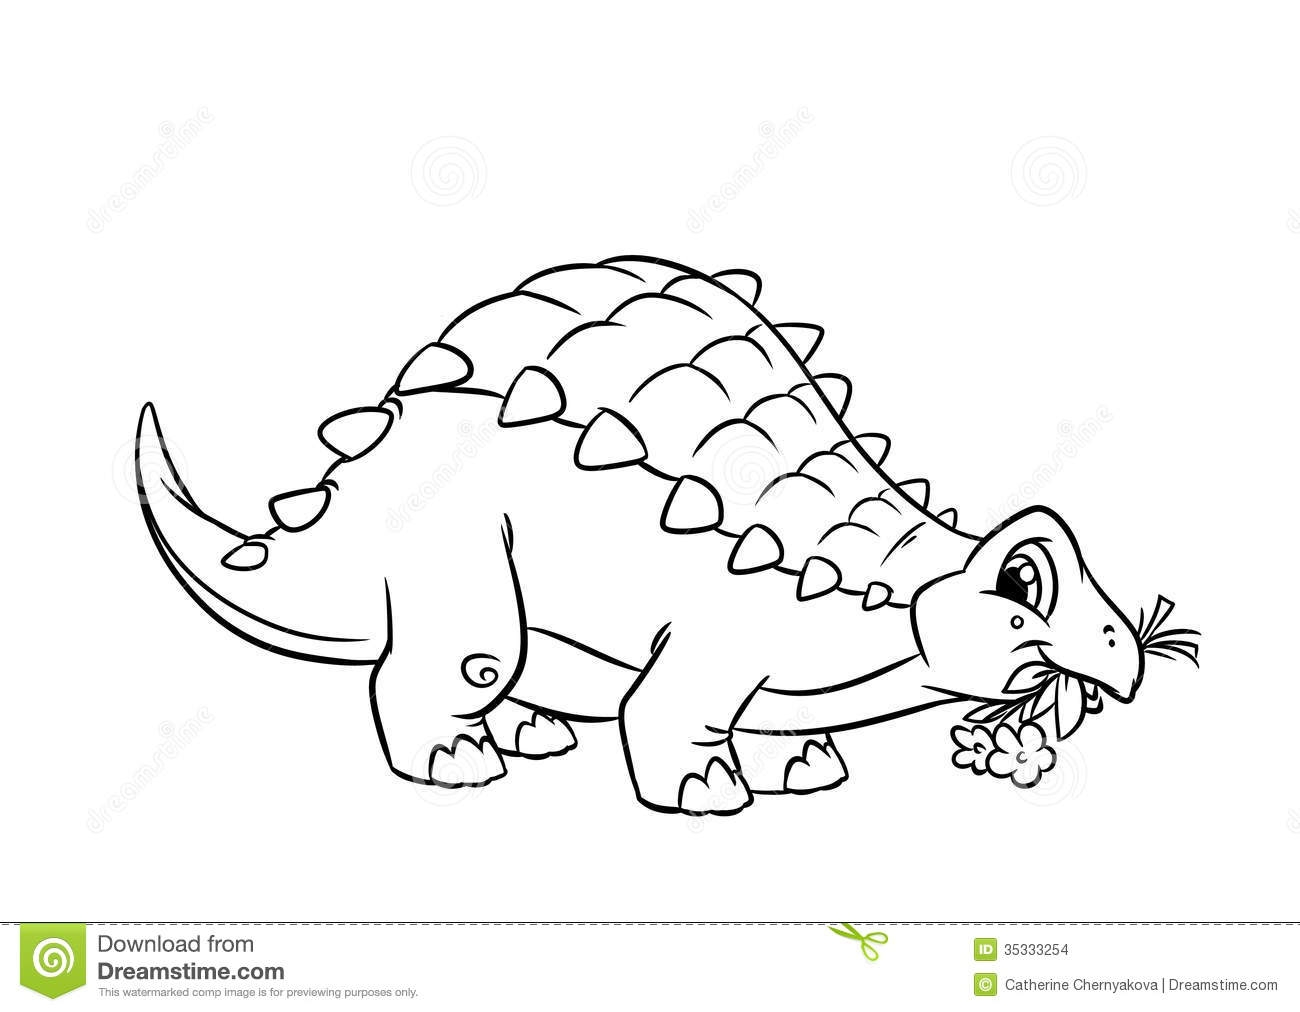 triceratops coloring page - stock images dinosaur ankylosaurus coloring pages isolated illustration cartoon image